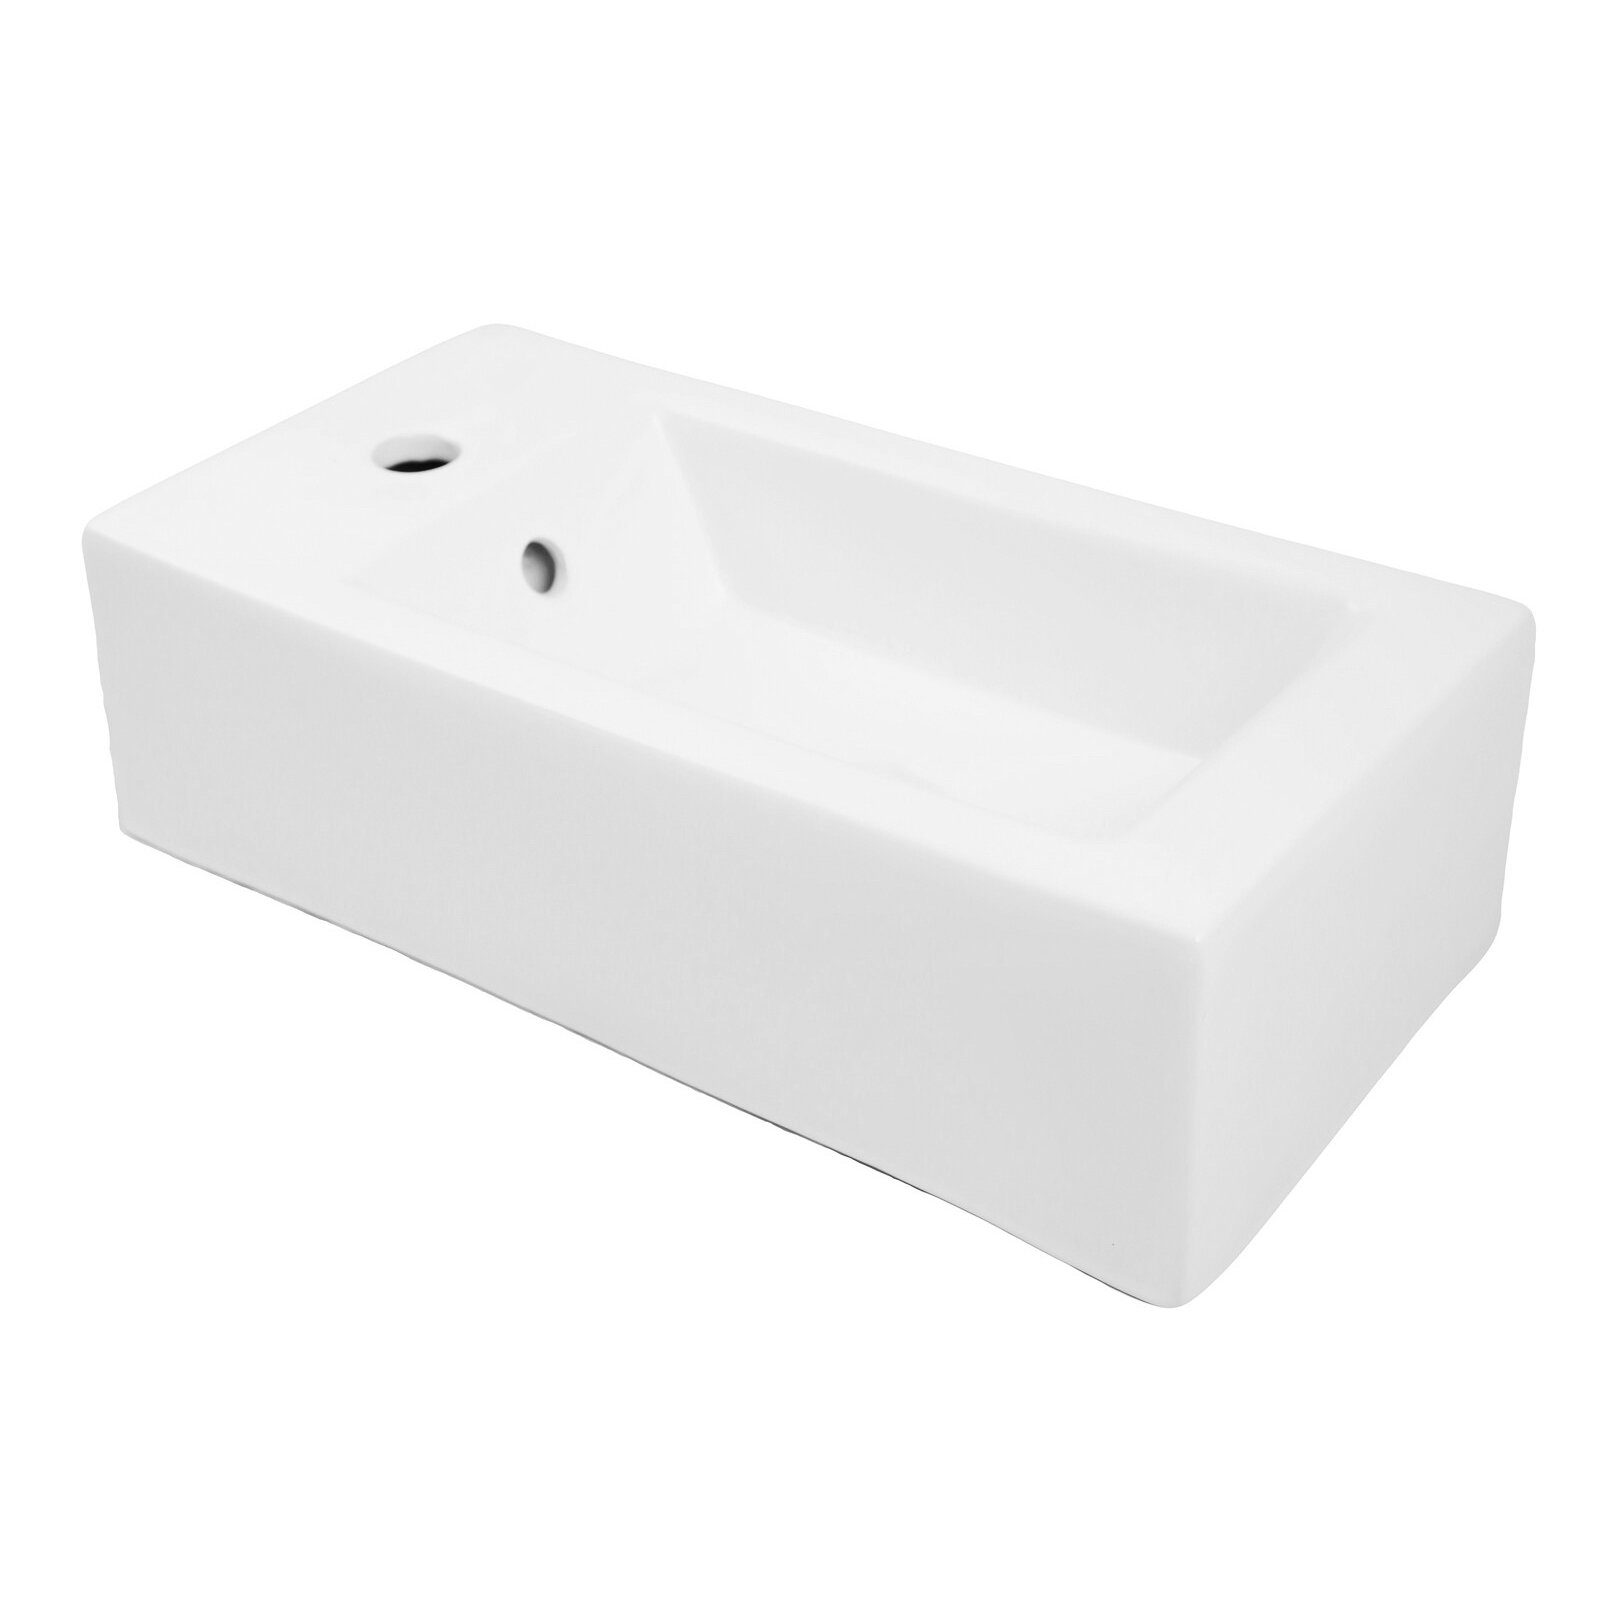 Decolav classically redefined 20 wall mounted or above counter rectangular lavatory sink with for Above counter bathroom sinks glass